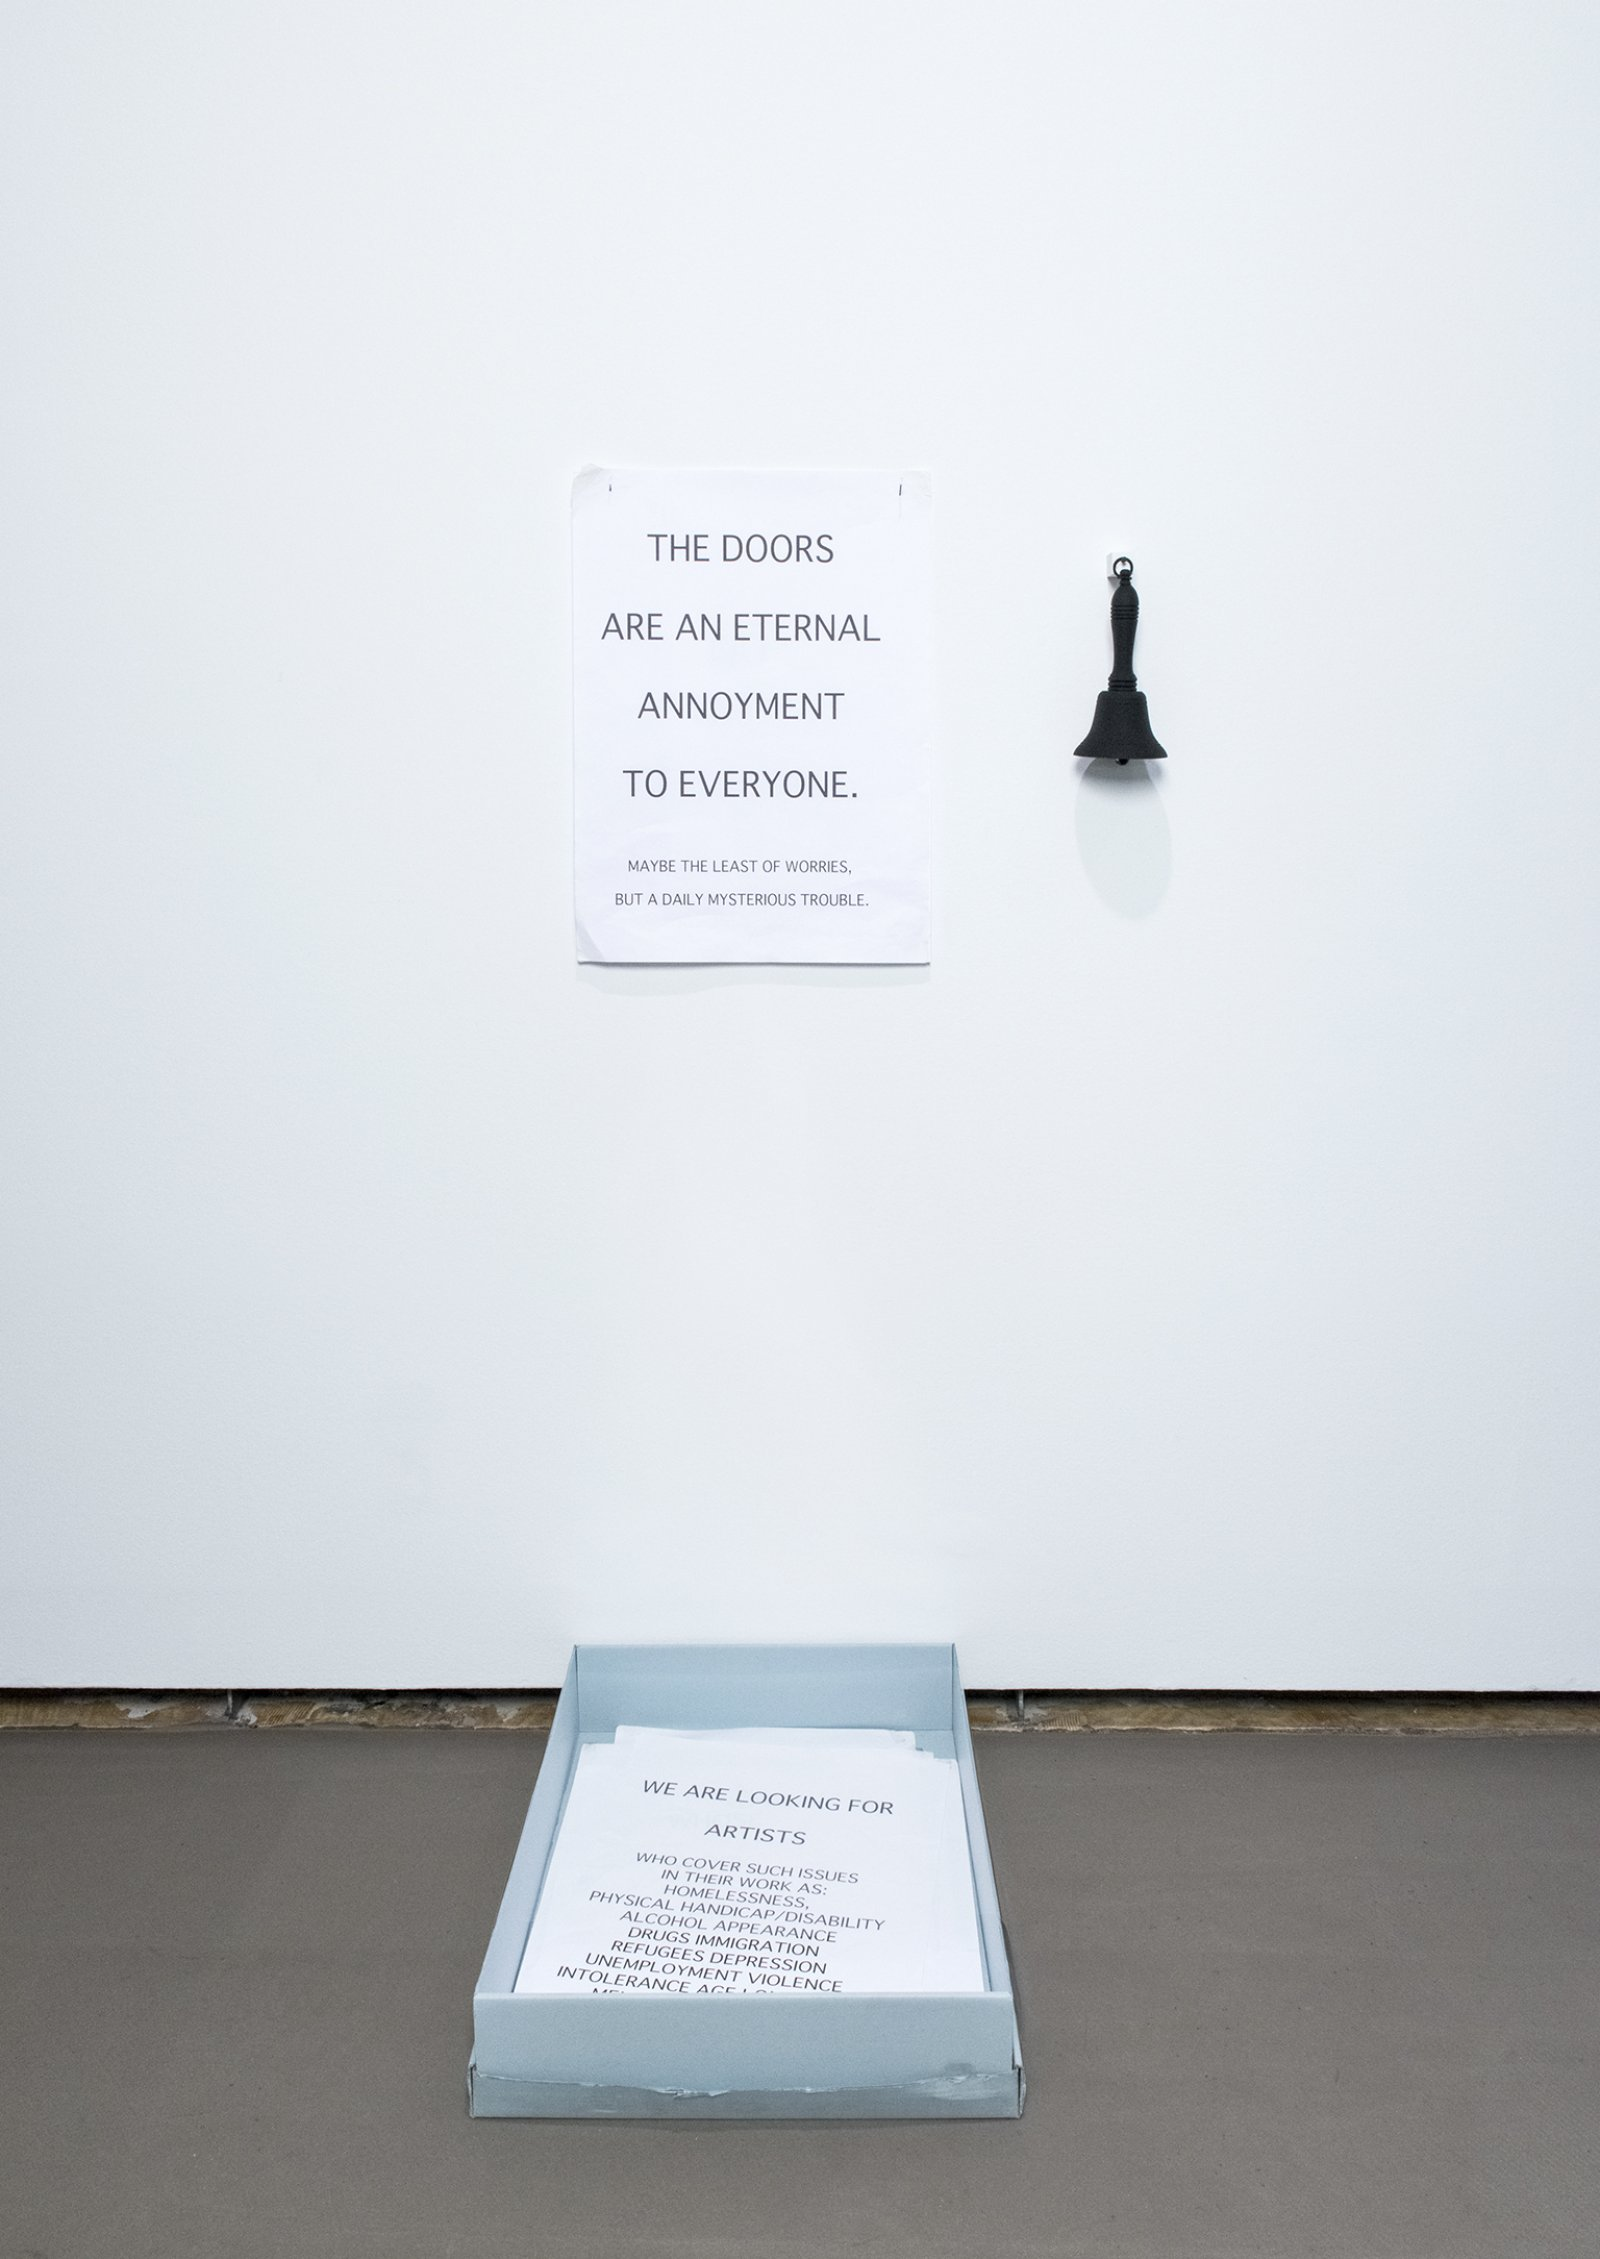 Geoffrey Farmer, Whose work are we doing?, 2007, 25 posters, brass bell painted black, hook, archival box, dimensions variable